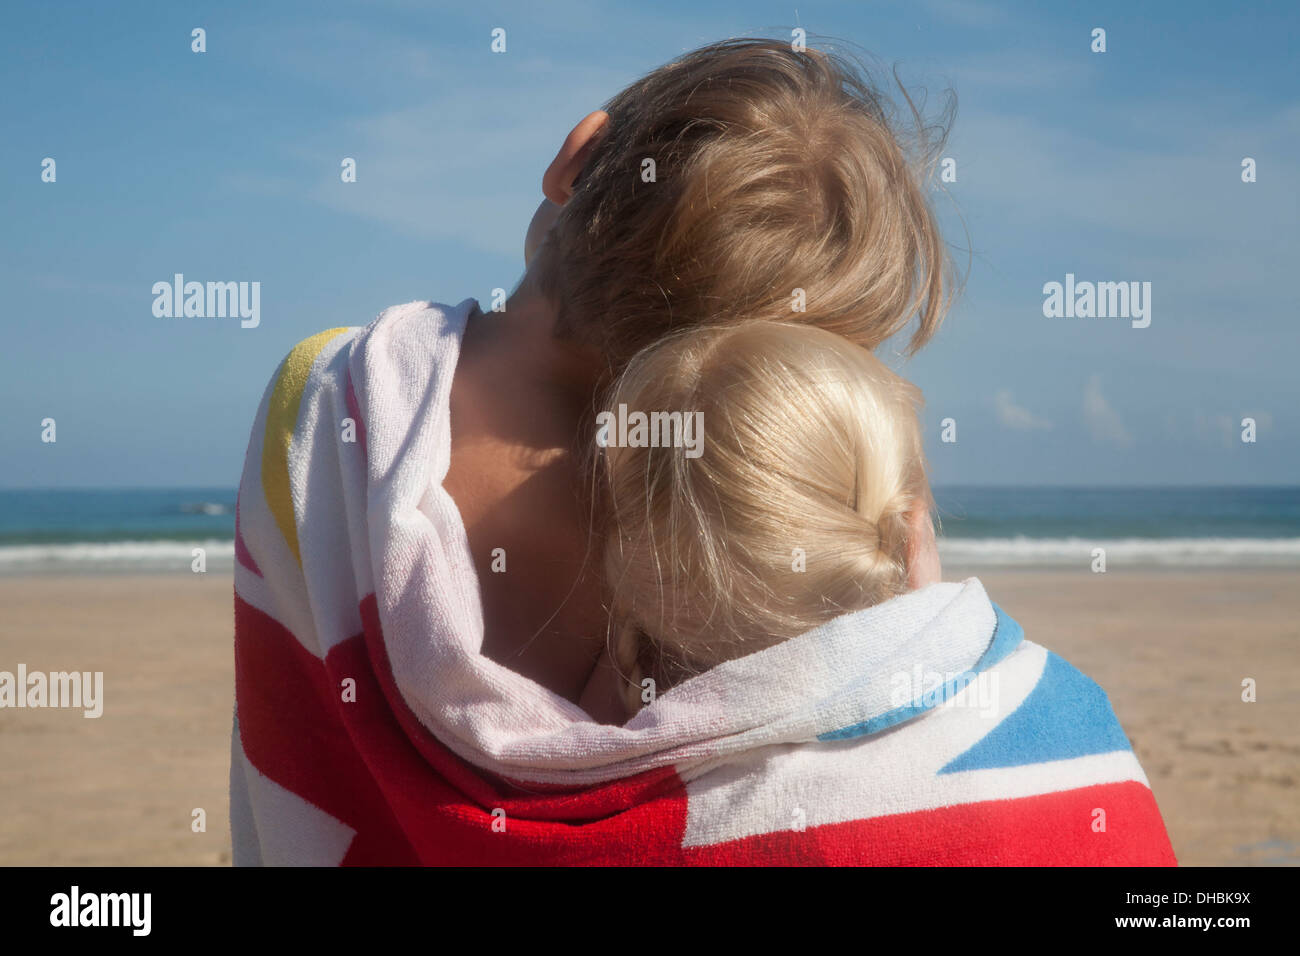 point of view stockfotos point of view bilder alamy. Black Bedroom Furniture Sets. Home Design Ideas